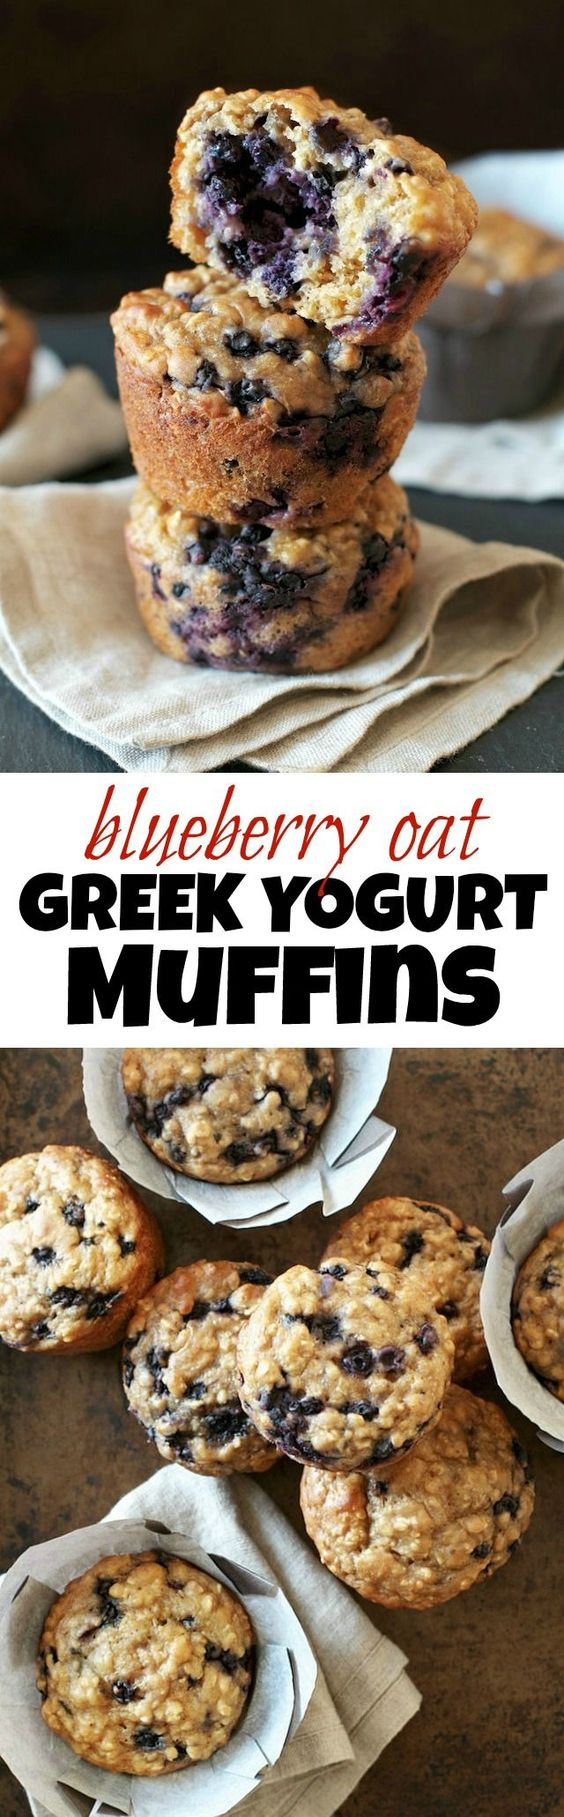 You won't find any butter or oil in these ridiculously soft and tender Blueberry…